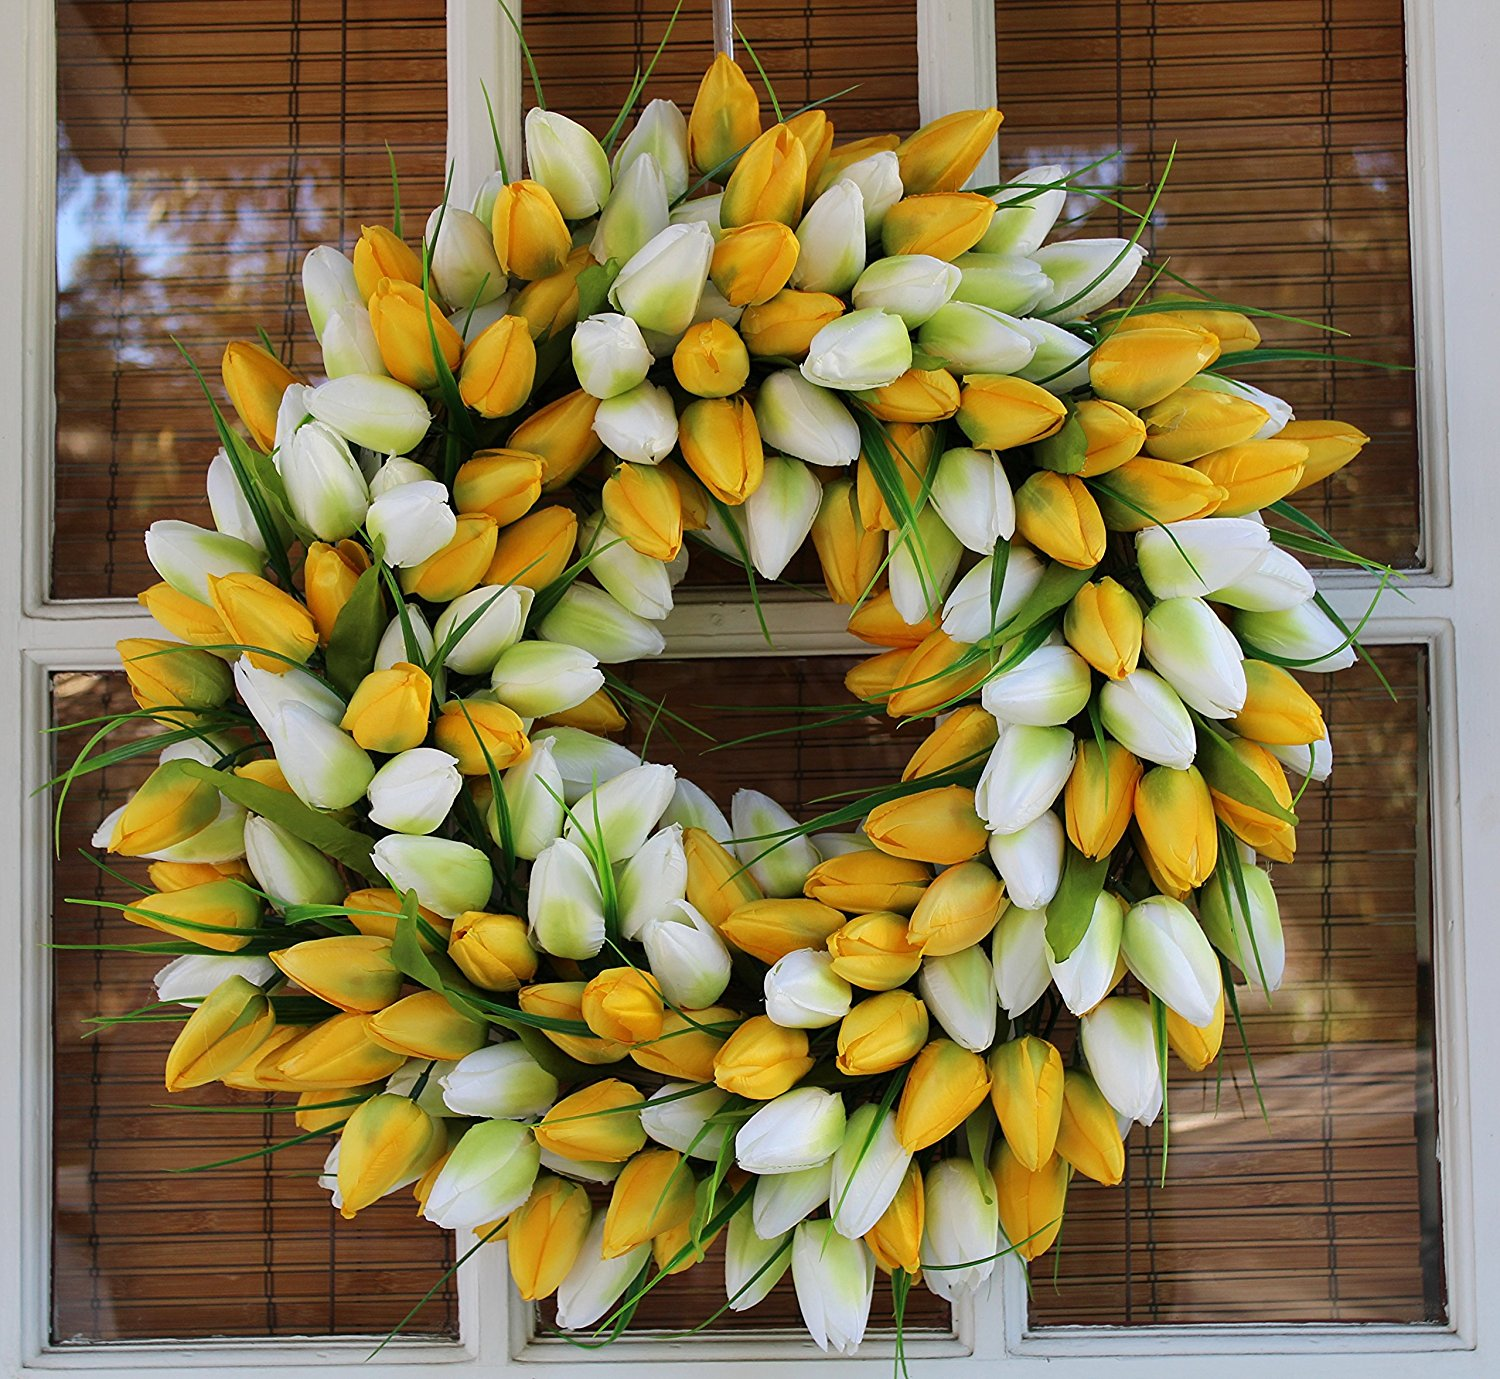 EASY, Inexpensive And Beautiful DIY Spring Wreath! From